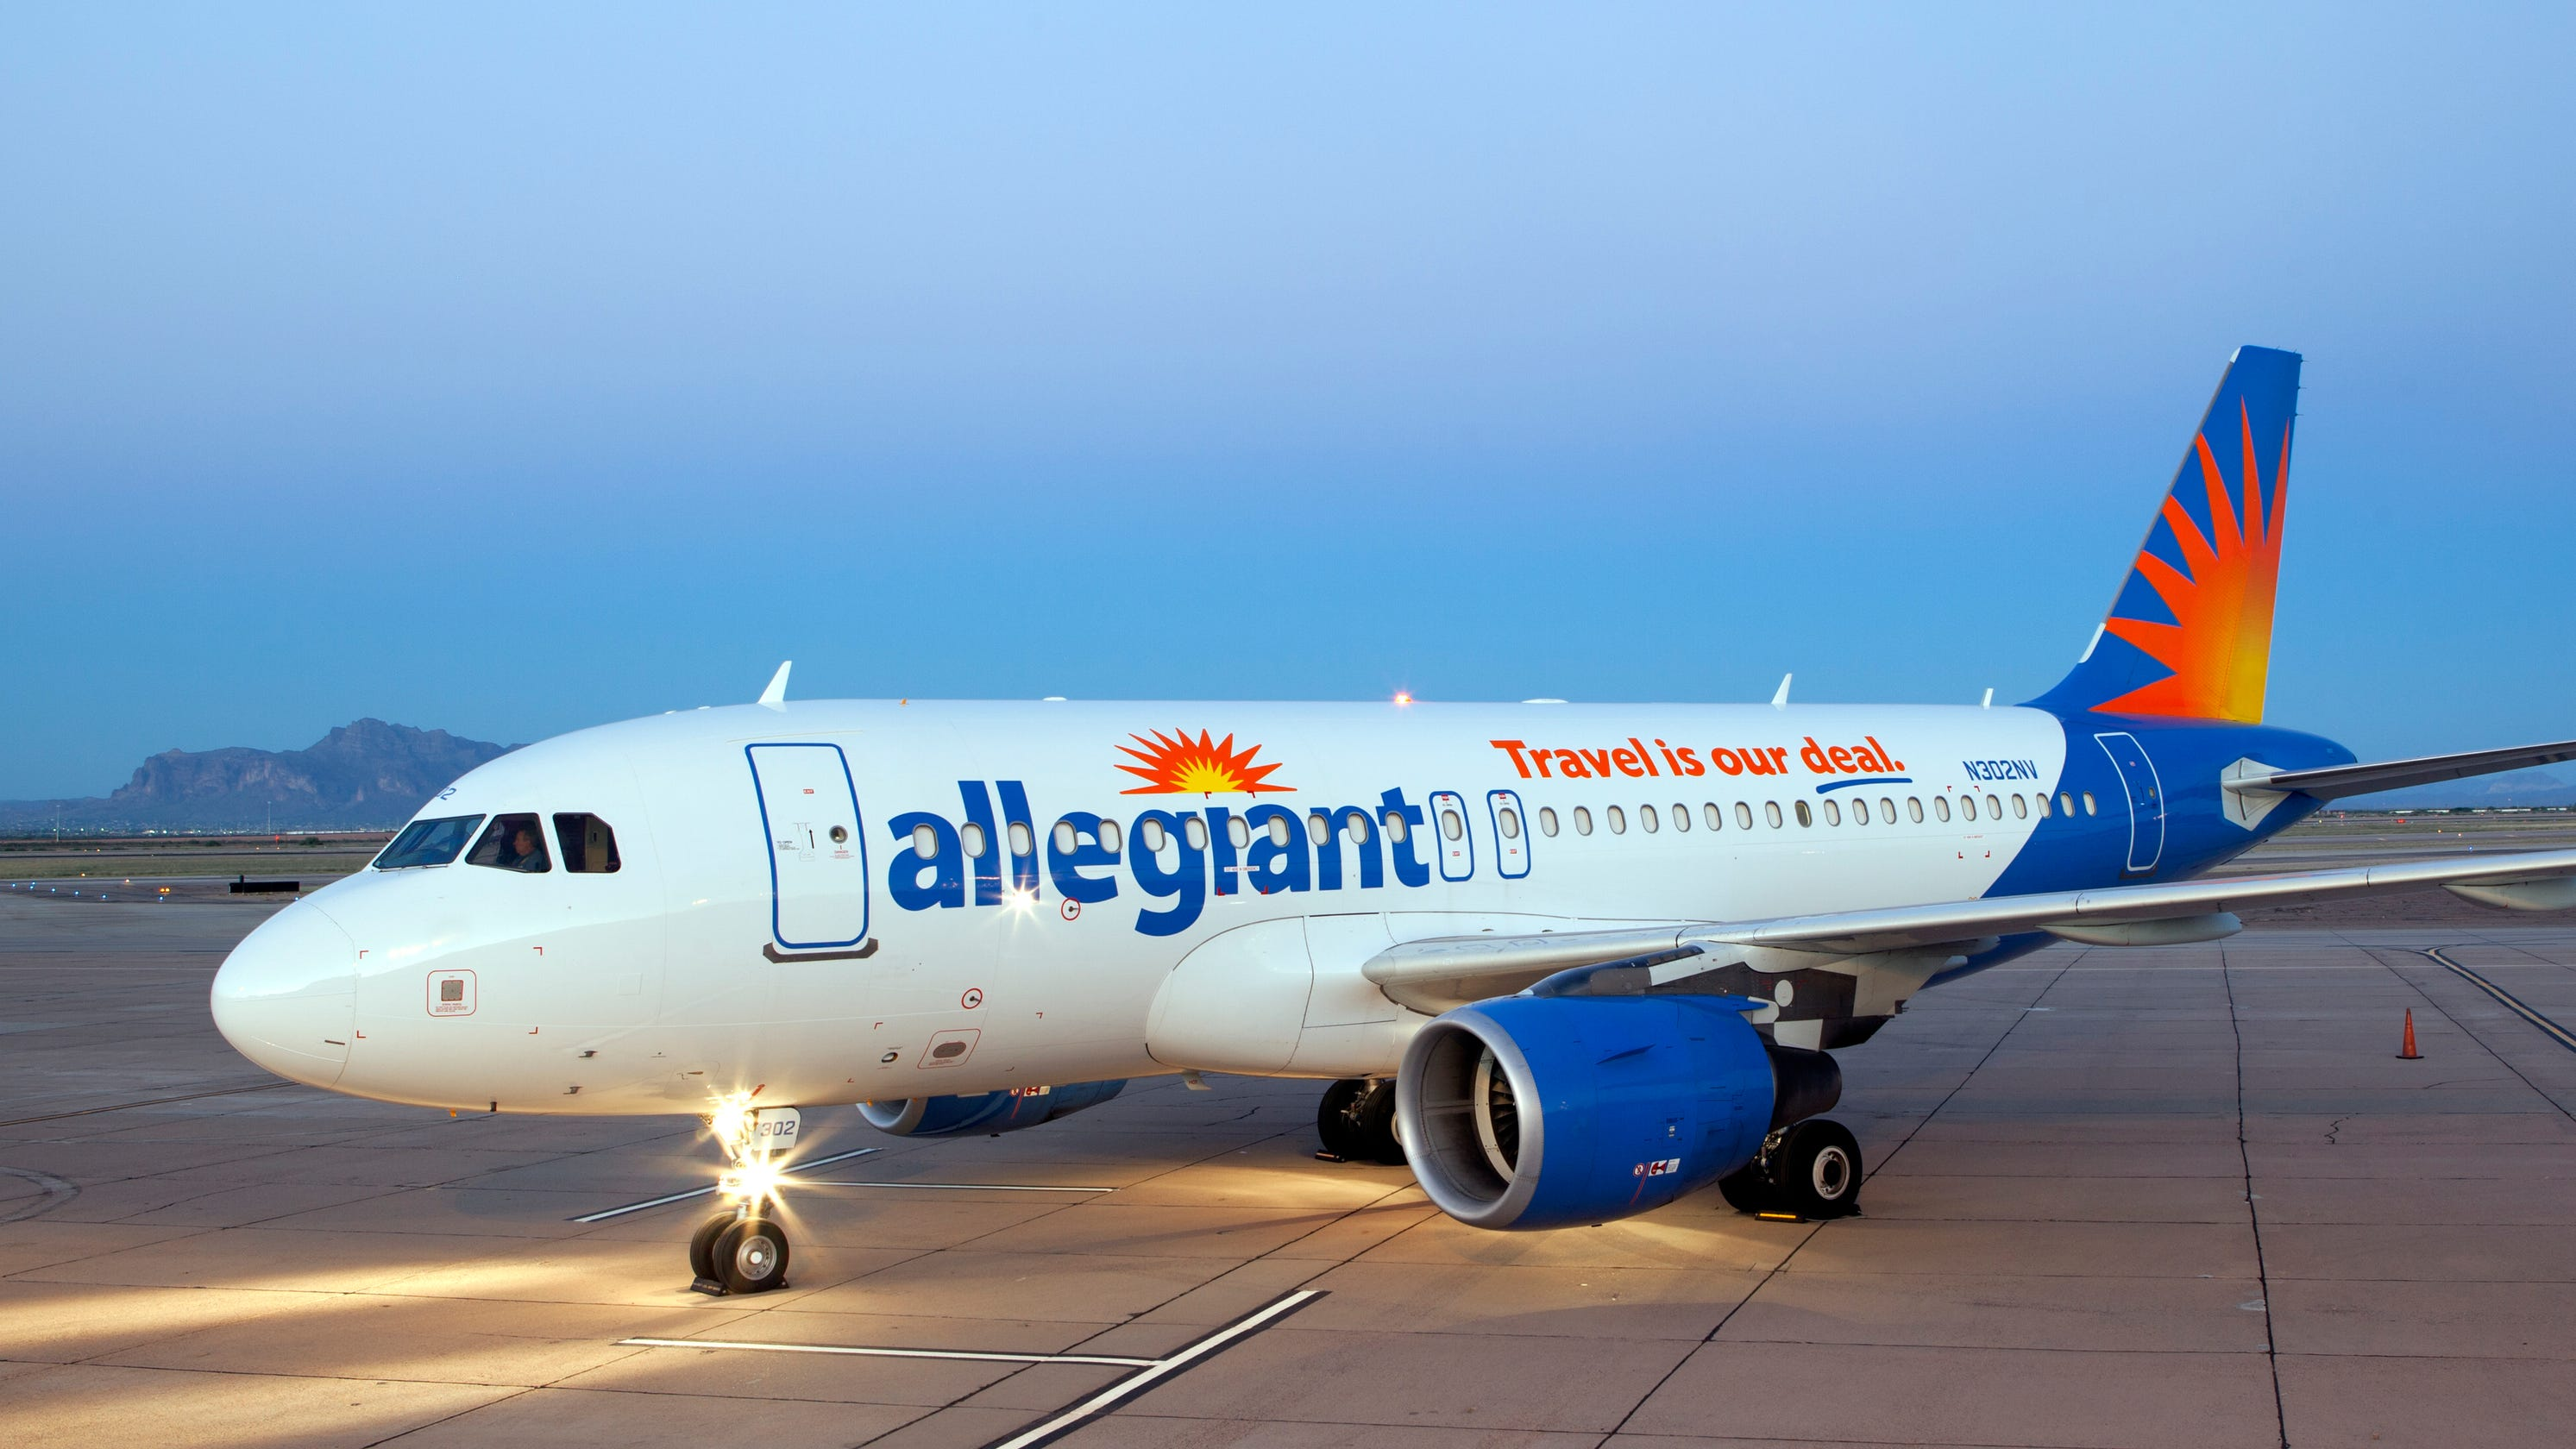 Allegiant Airs New Extra Legroom Seat Is In The Test Phase